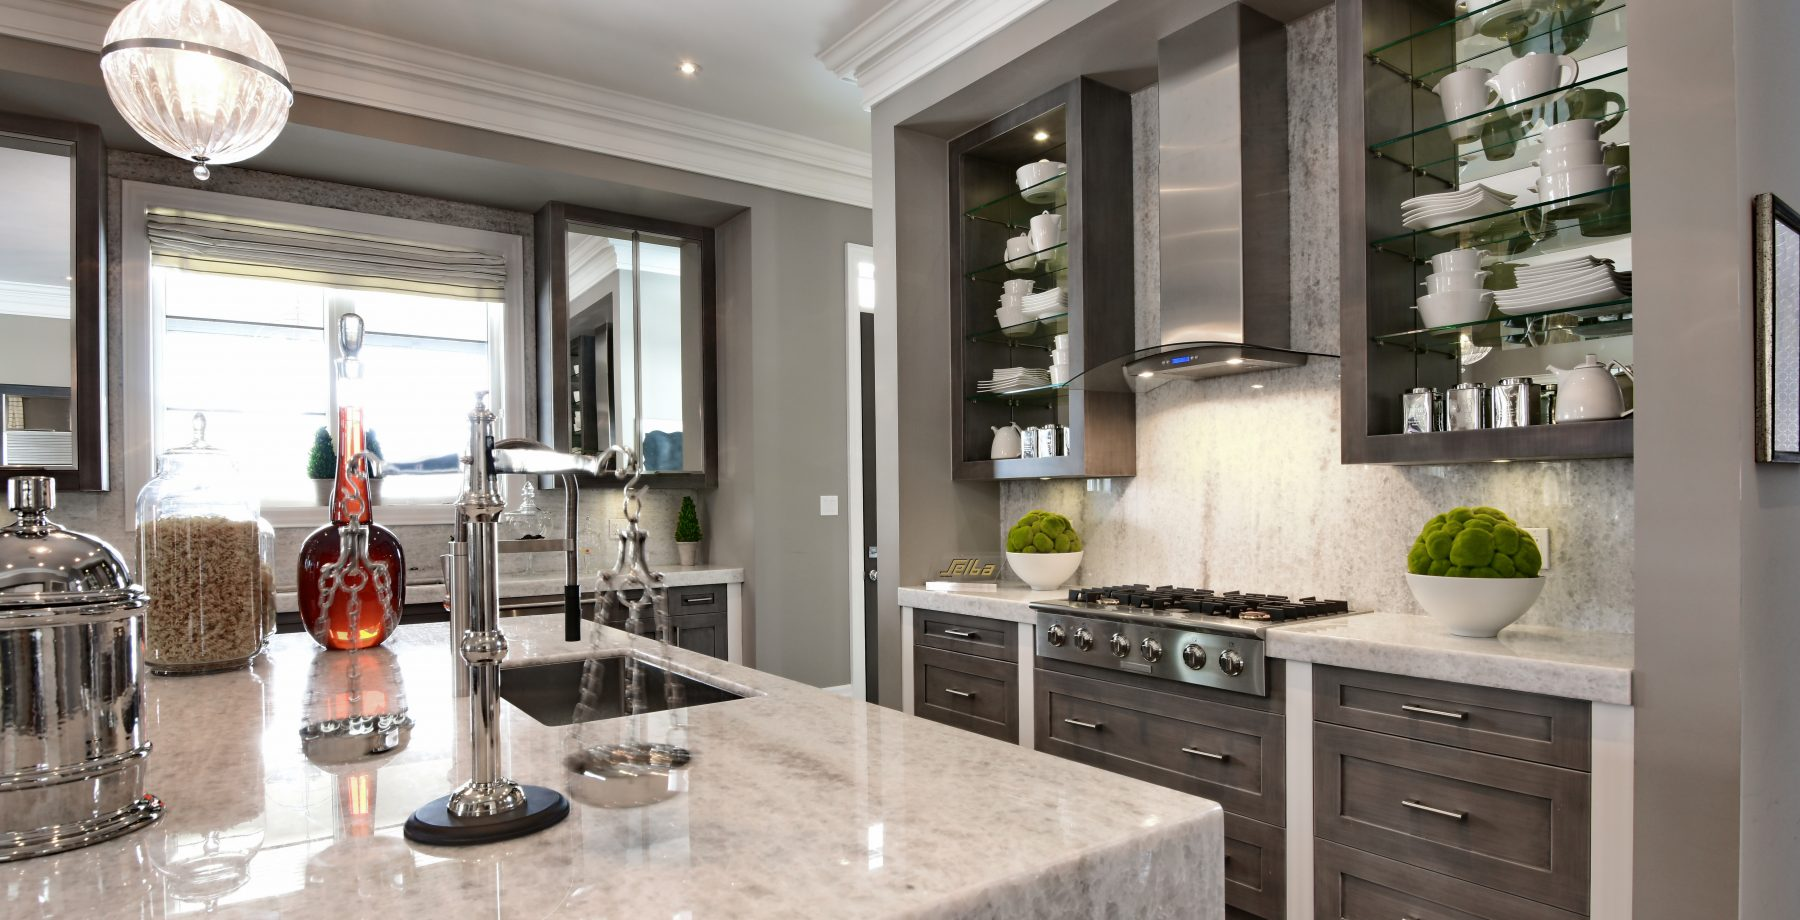 Home Selba Kitchens Amp Baths Is A Canadian Based Company